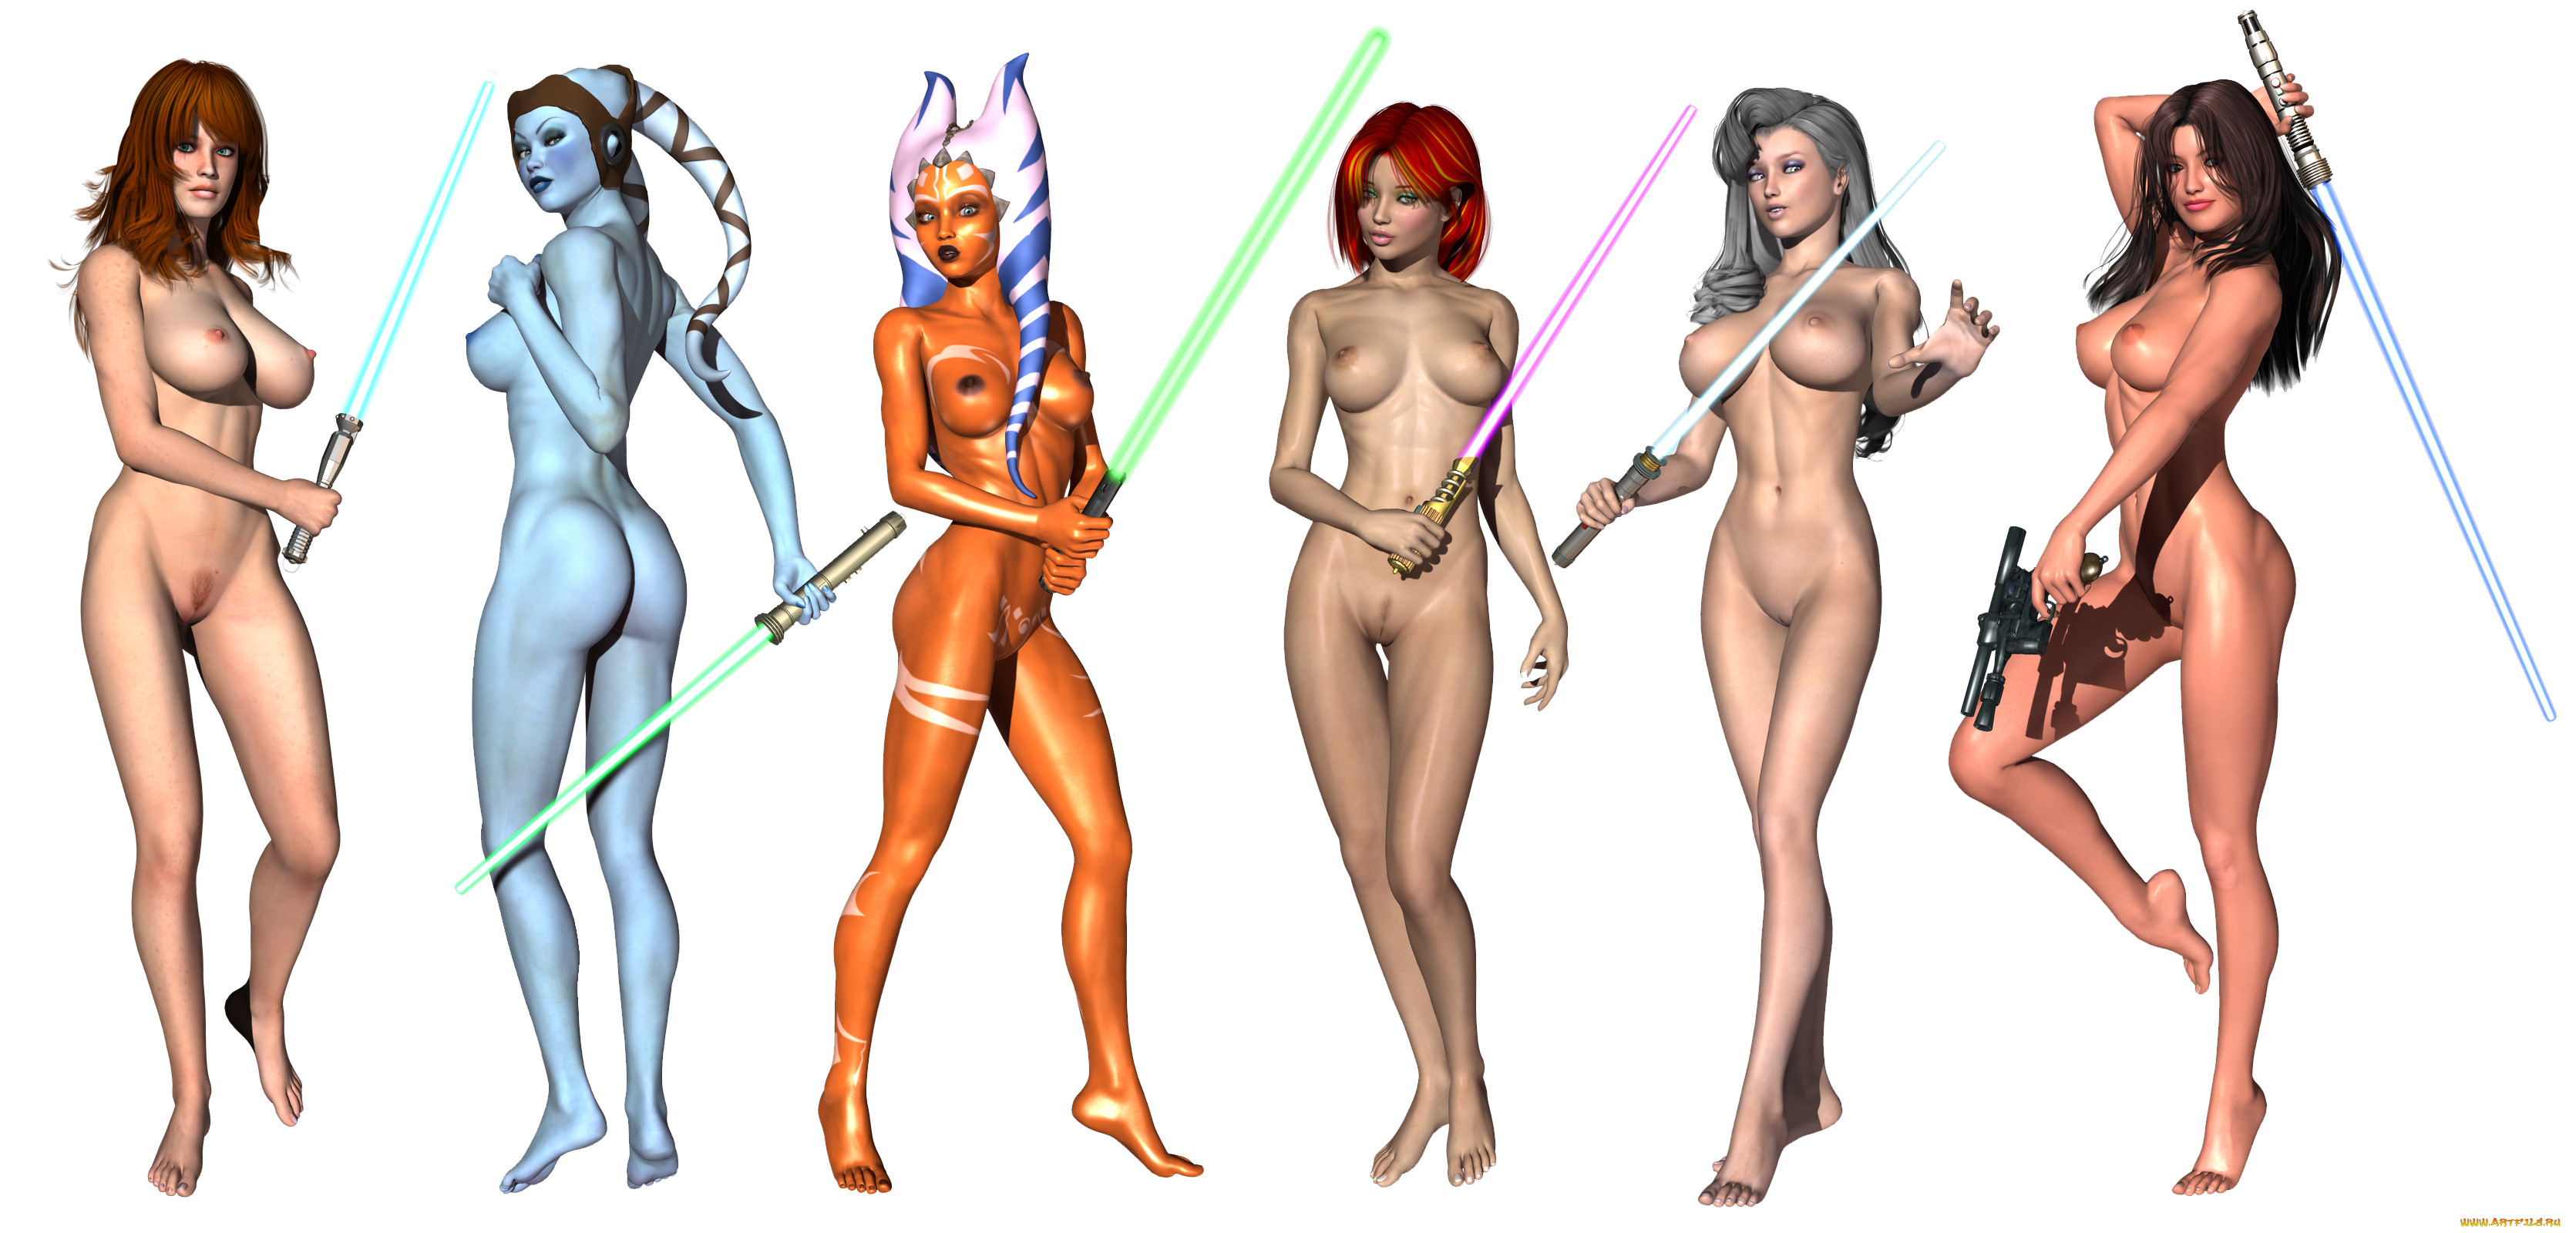 Naked jedi having sex anime videos